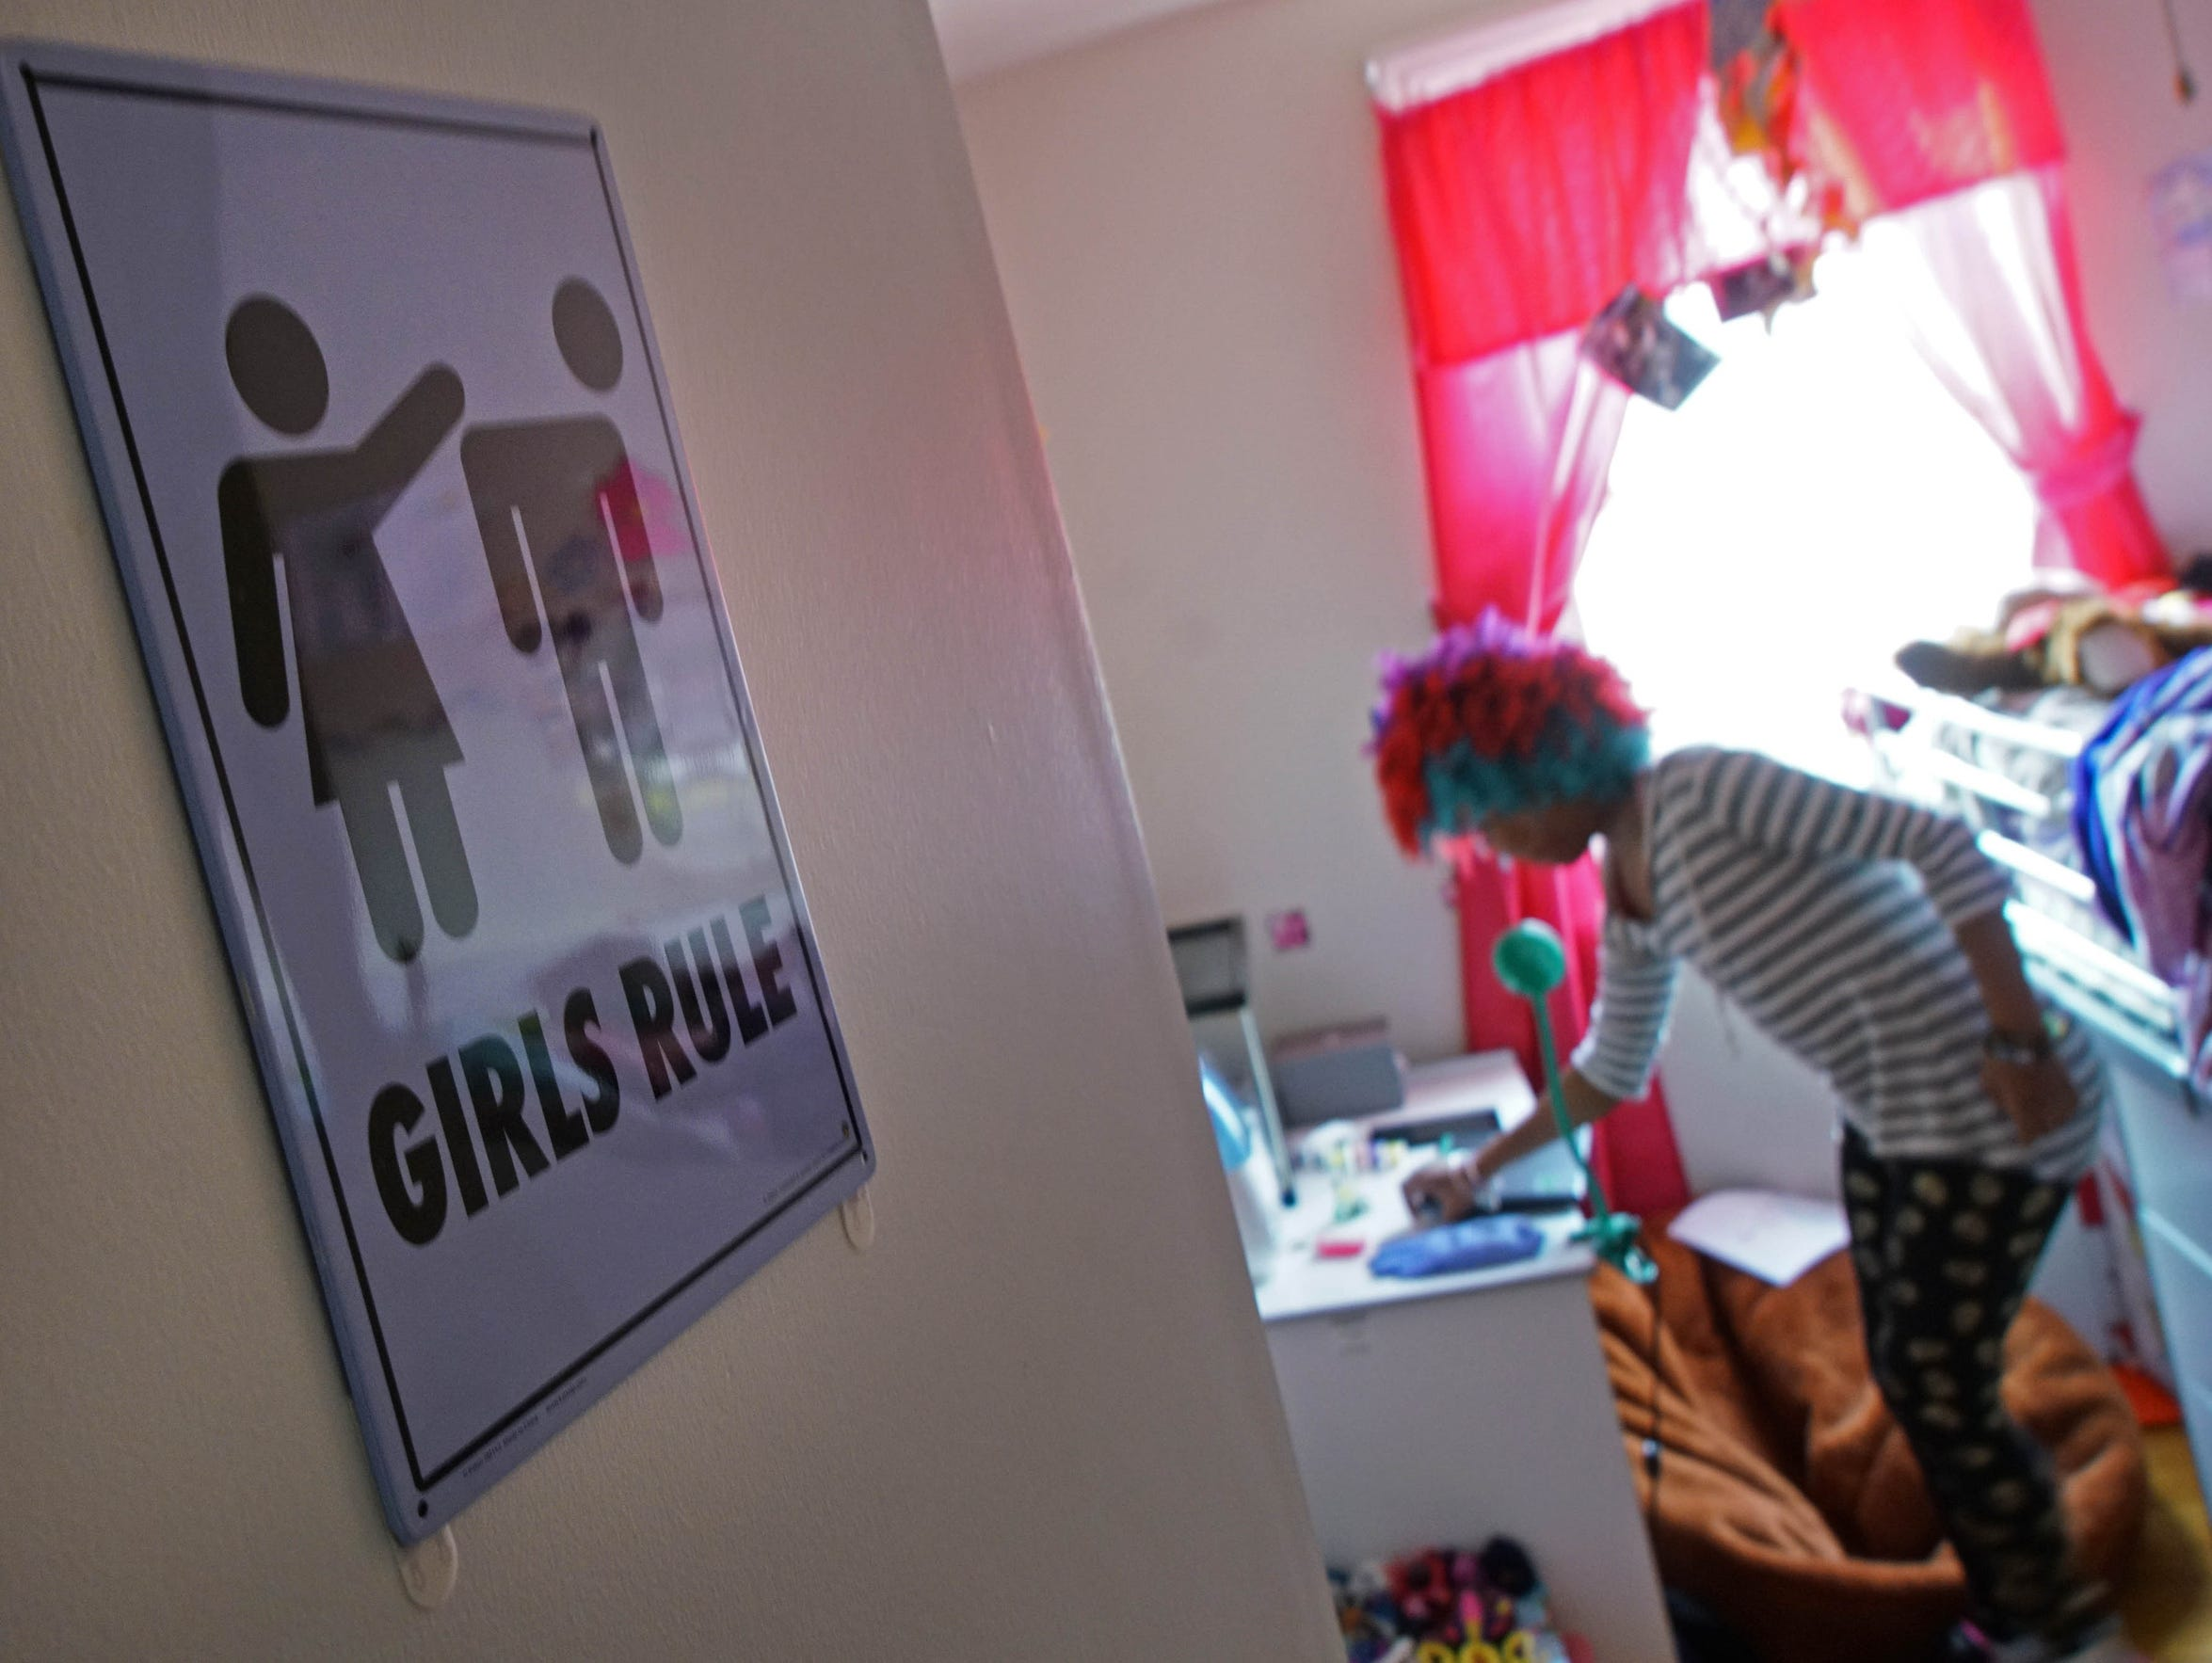 A Girls Rule sign decorates the doorway to 13-year-old